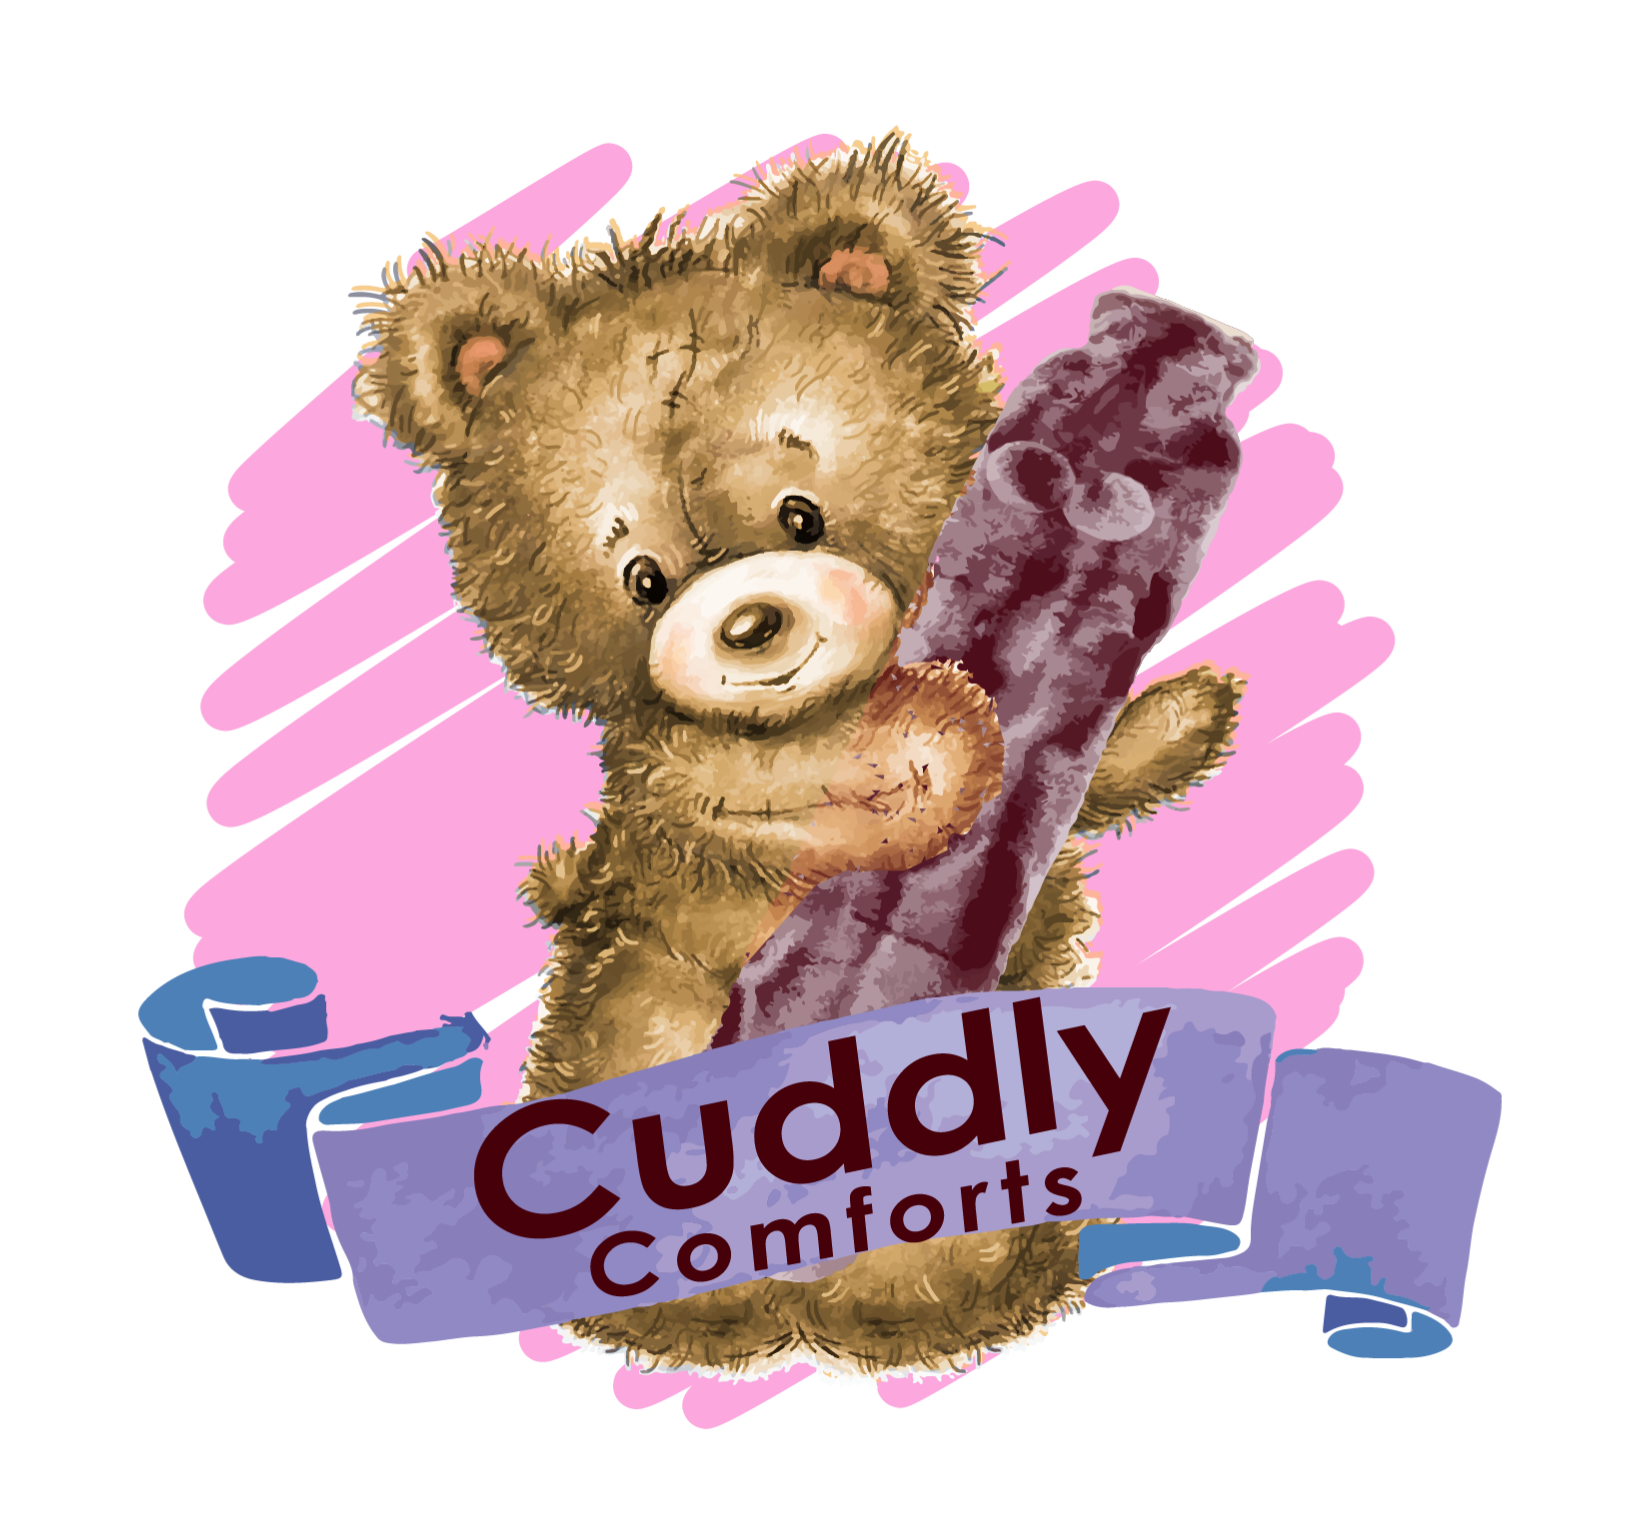 Cuddly Comforts